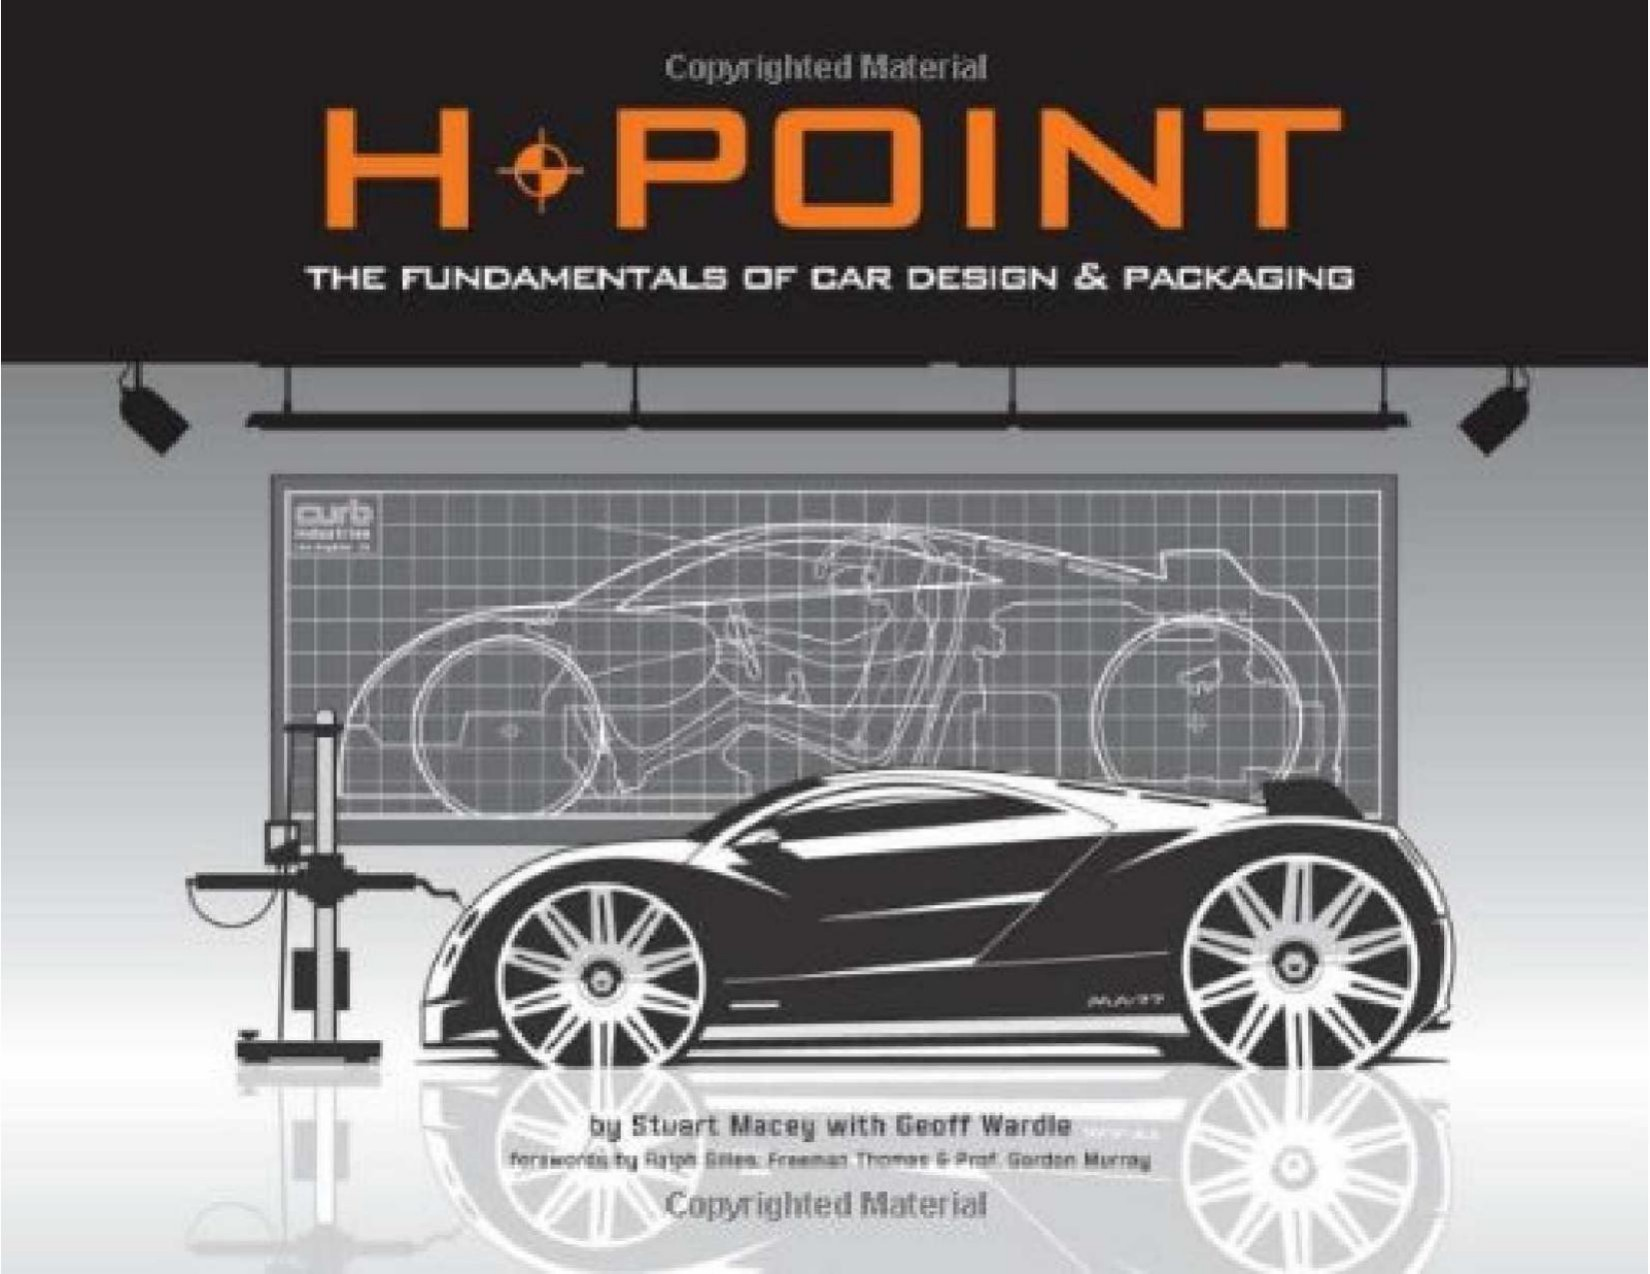 H-Point: The Fundamentals of Car Design & Packaging-P2P – Releaselog